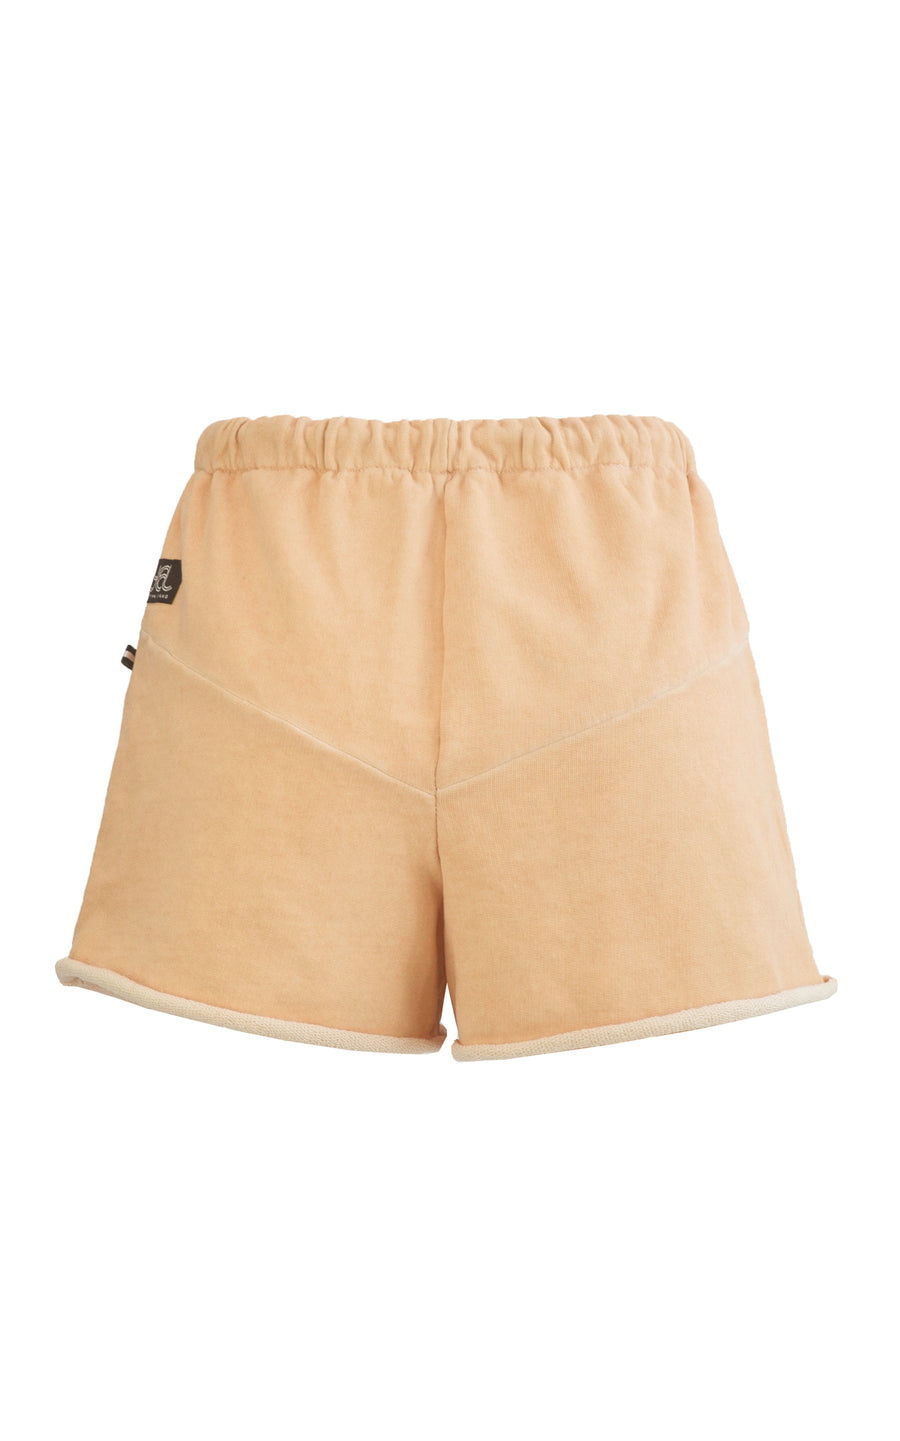 Shortie Sweat Shorts. Apricot